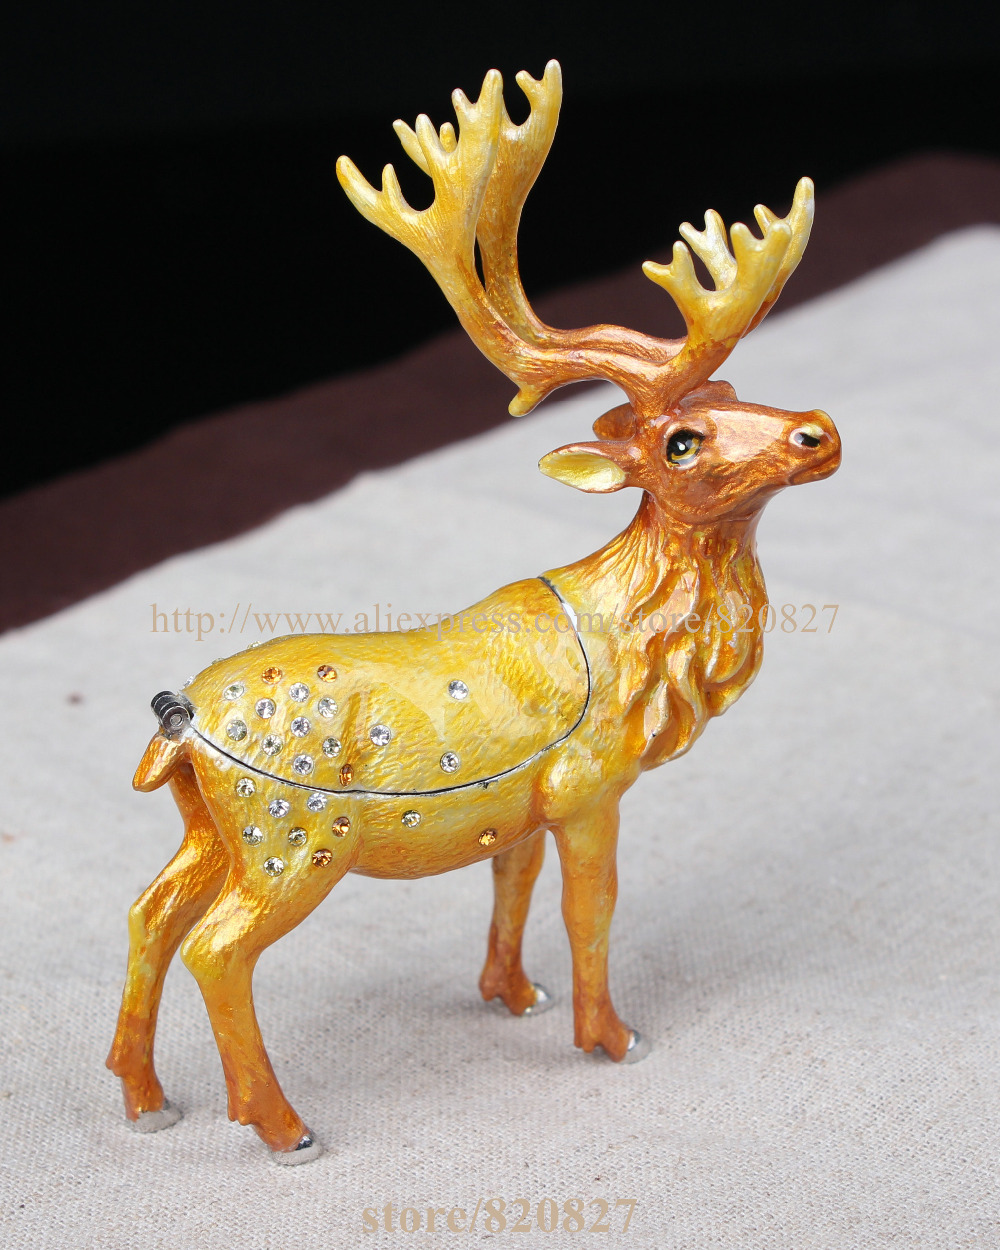 Collectible Deer Jewelry Box Reindeer-shaped Pill Box Deer Jeweled Trinket Box Enameled Pewter Bejeweled Musk Deer аксессуар чехол для xiaomi redmi 5 red line unit black